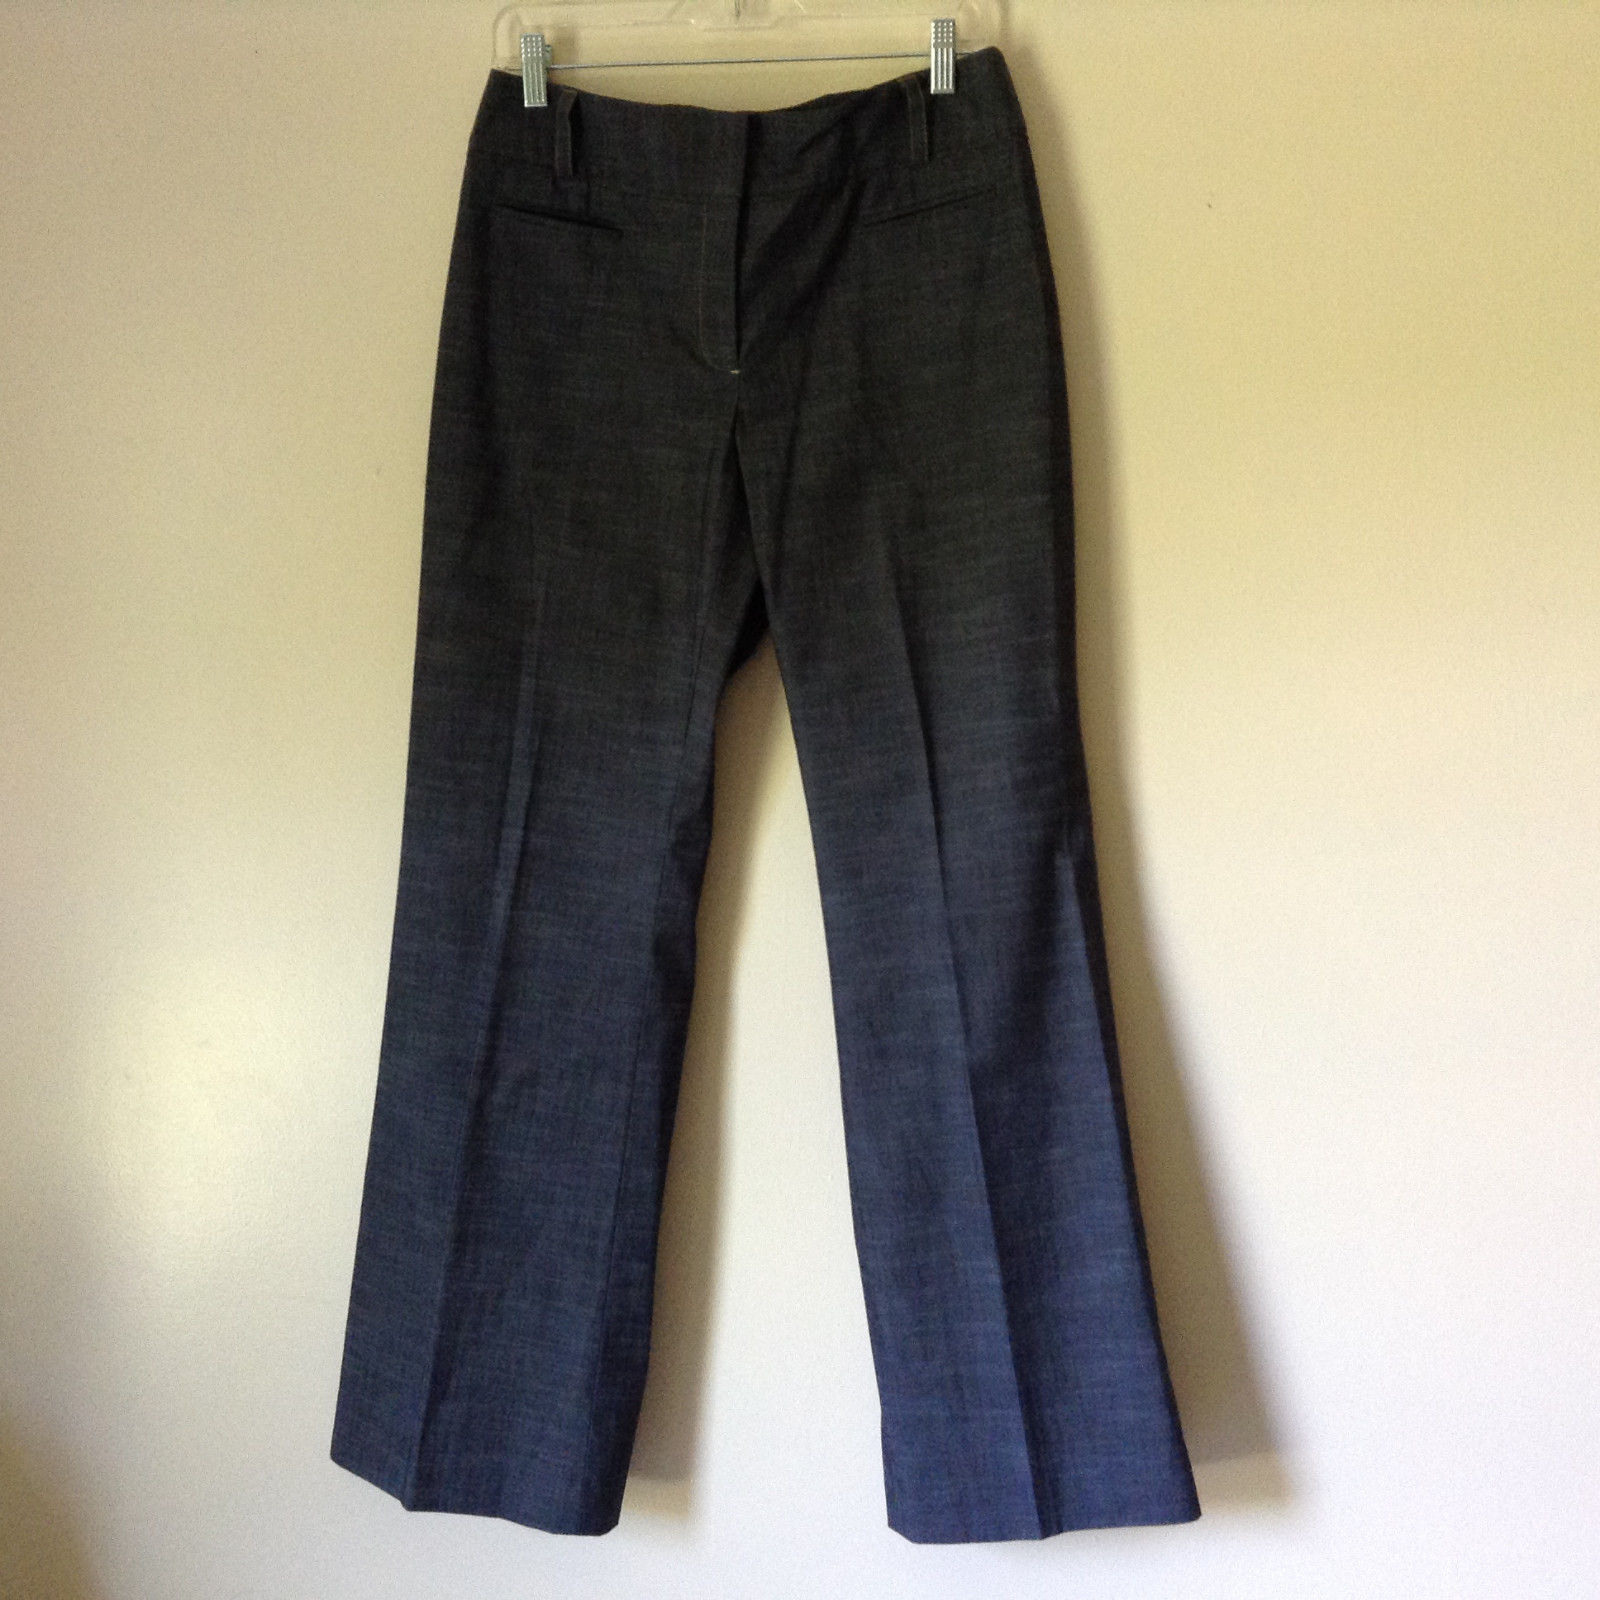 Blue Casual Pants by Apt 9 Two Front Pockets One Back Pocket Size 10 Regular